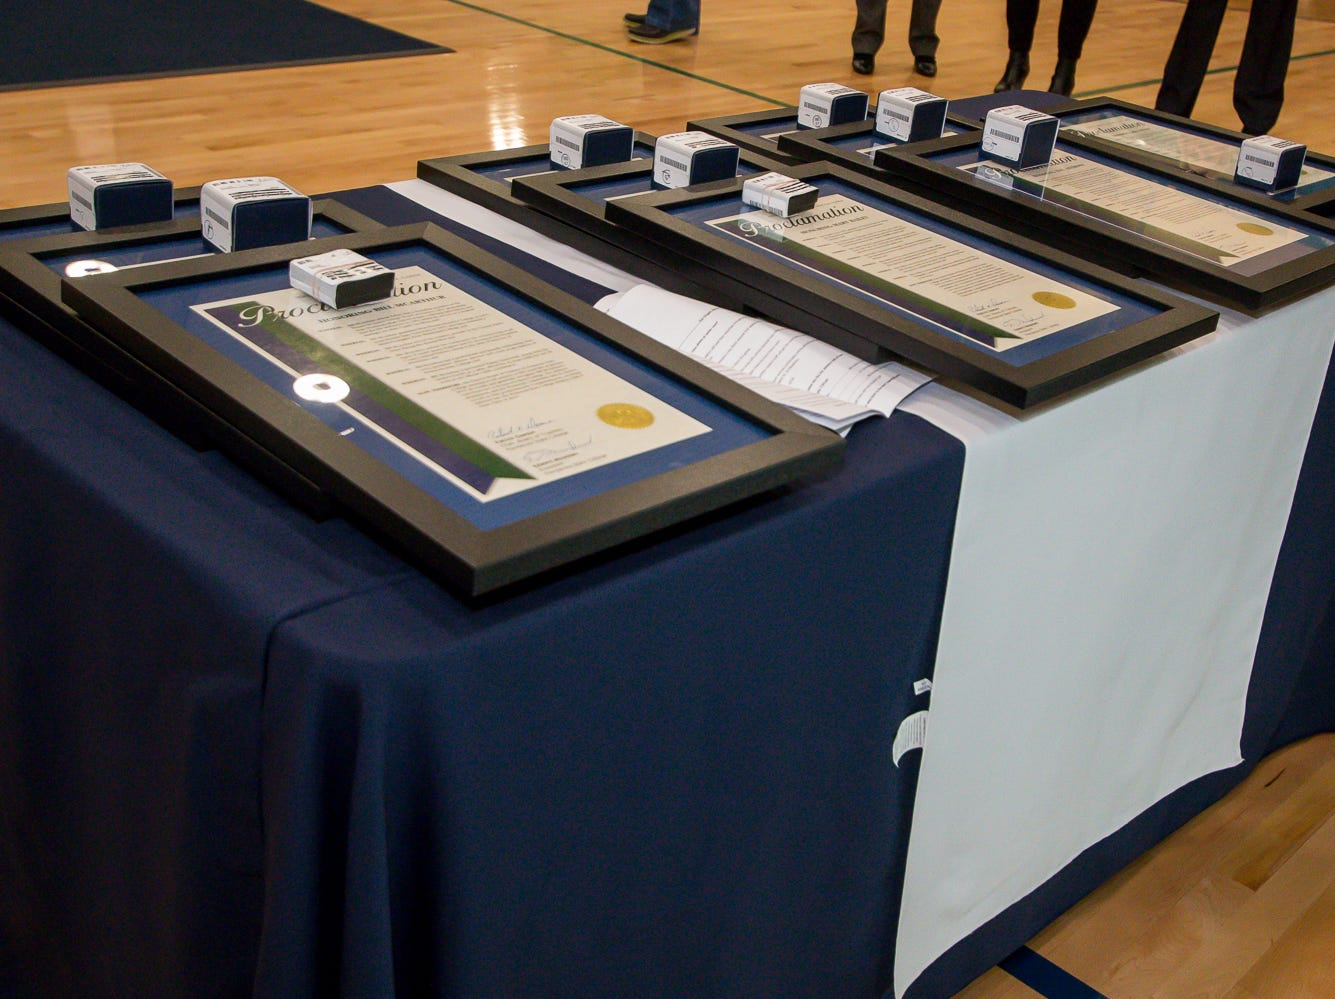 Previous Pensacola State College athletes, coaches, advisors and more, including two posthumously, were honored during Pensacola State College's inaugural Athletics Hall of Fame induction ceremony on Saturday, February 16, 2019, in the Hartsell Arena on the main campus.